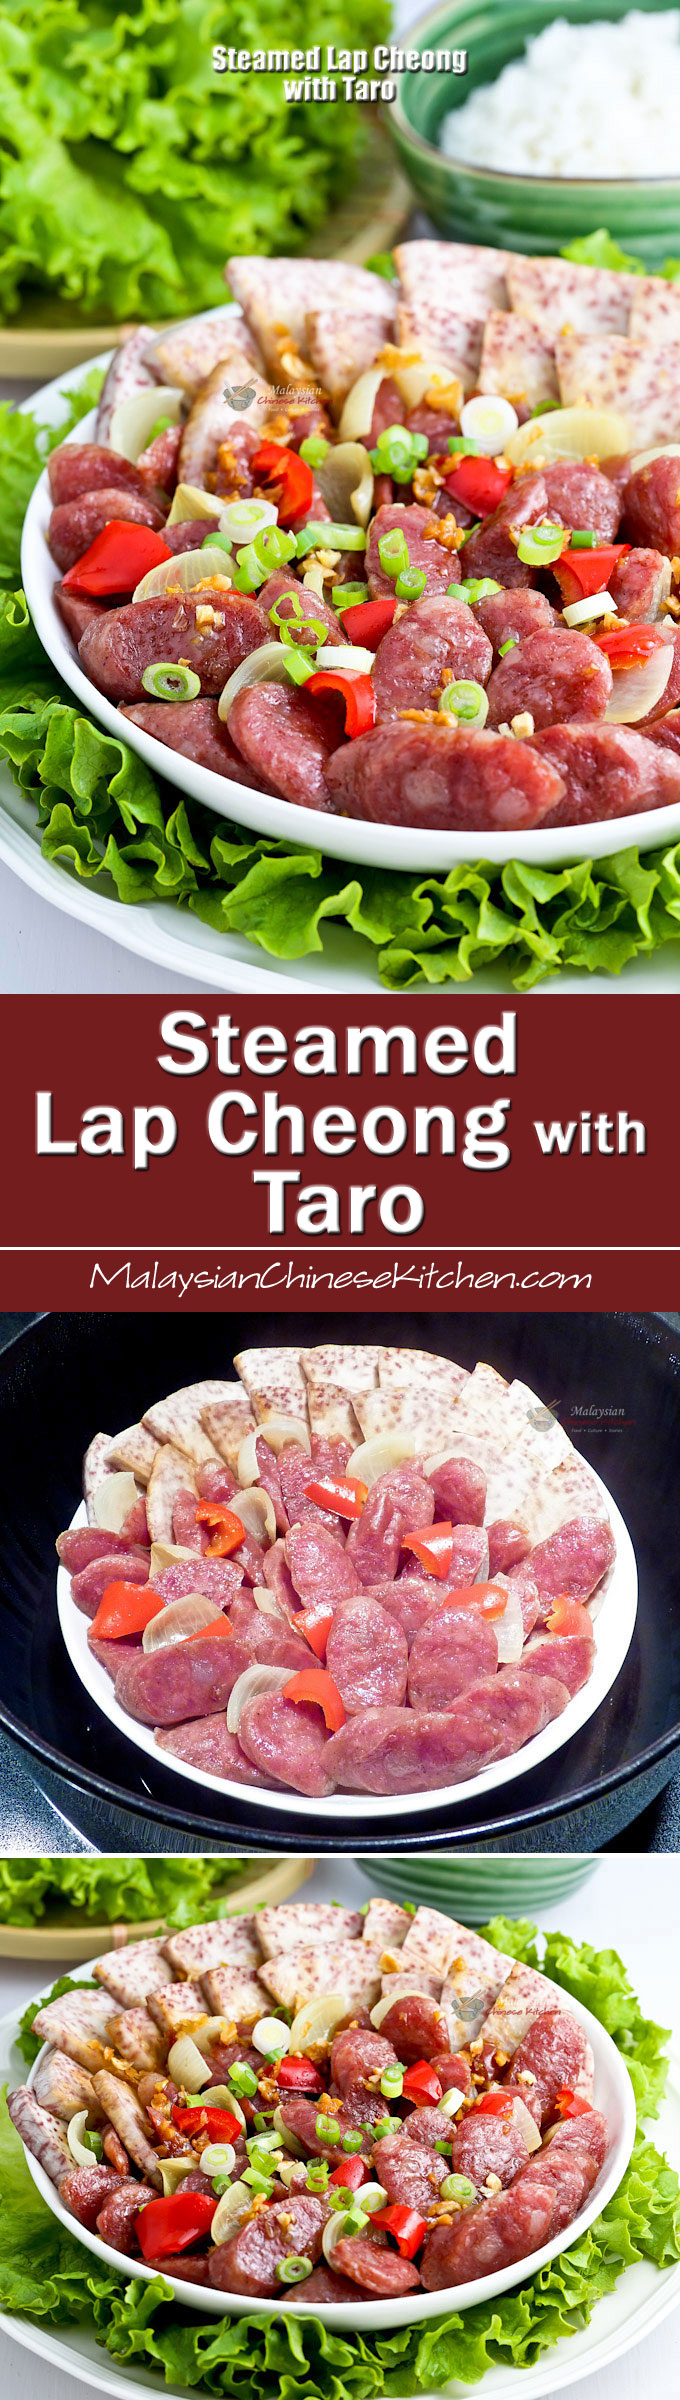 Steamed Lap Cheong and Taro is a simple home style dish that is quick and easy to prepare. Very tasty and delicious served with steamed rice. | MalaysianChineseKitchen.com